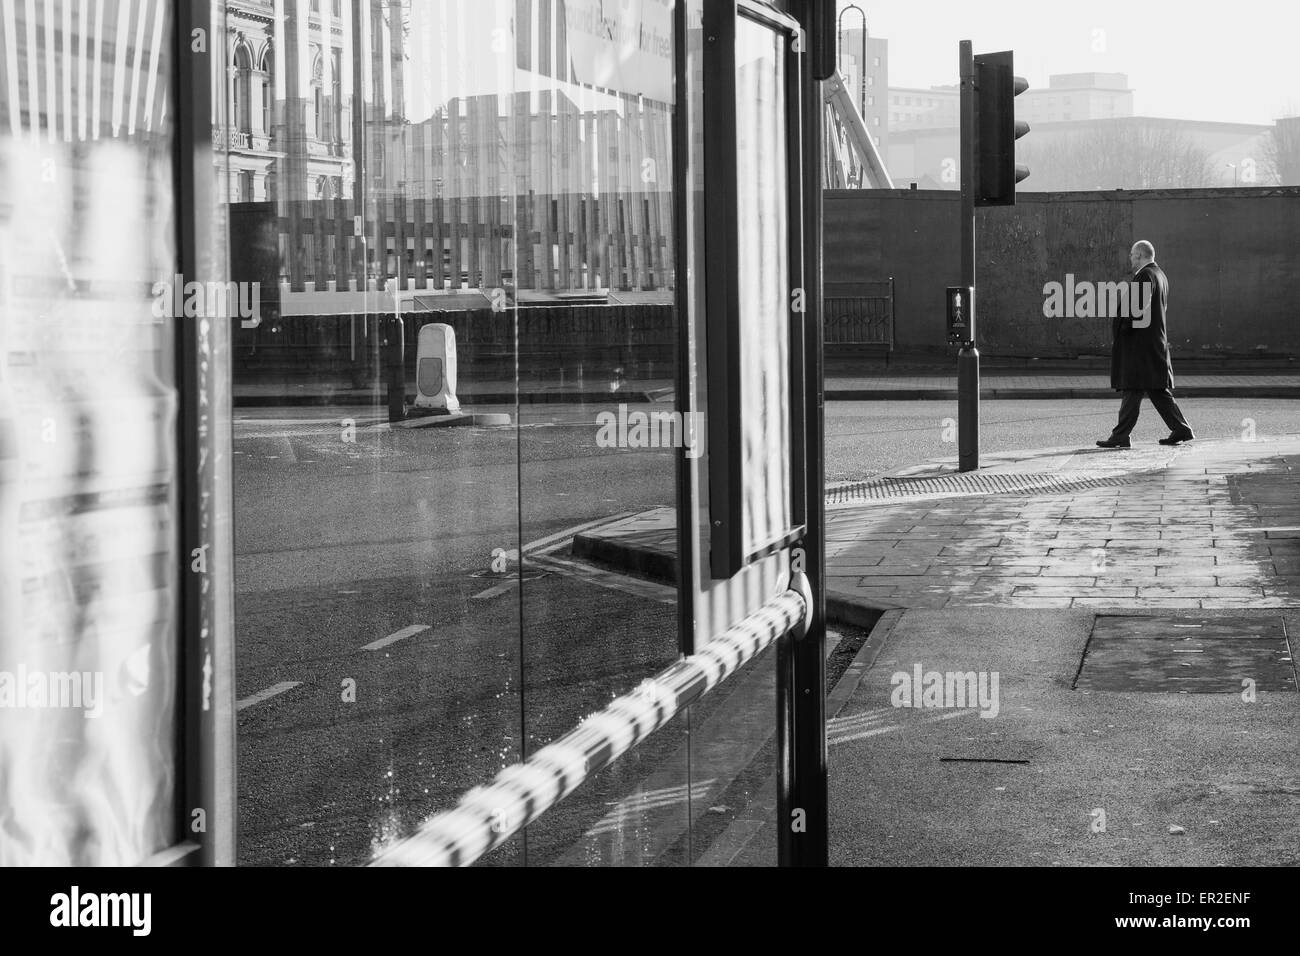 A street view in Bradford, England, looking towards where the new Westfield shopping centre now stands. - Stock Image